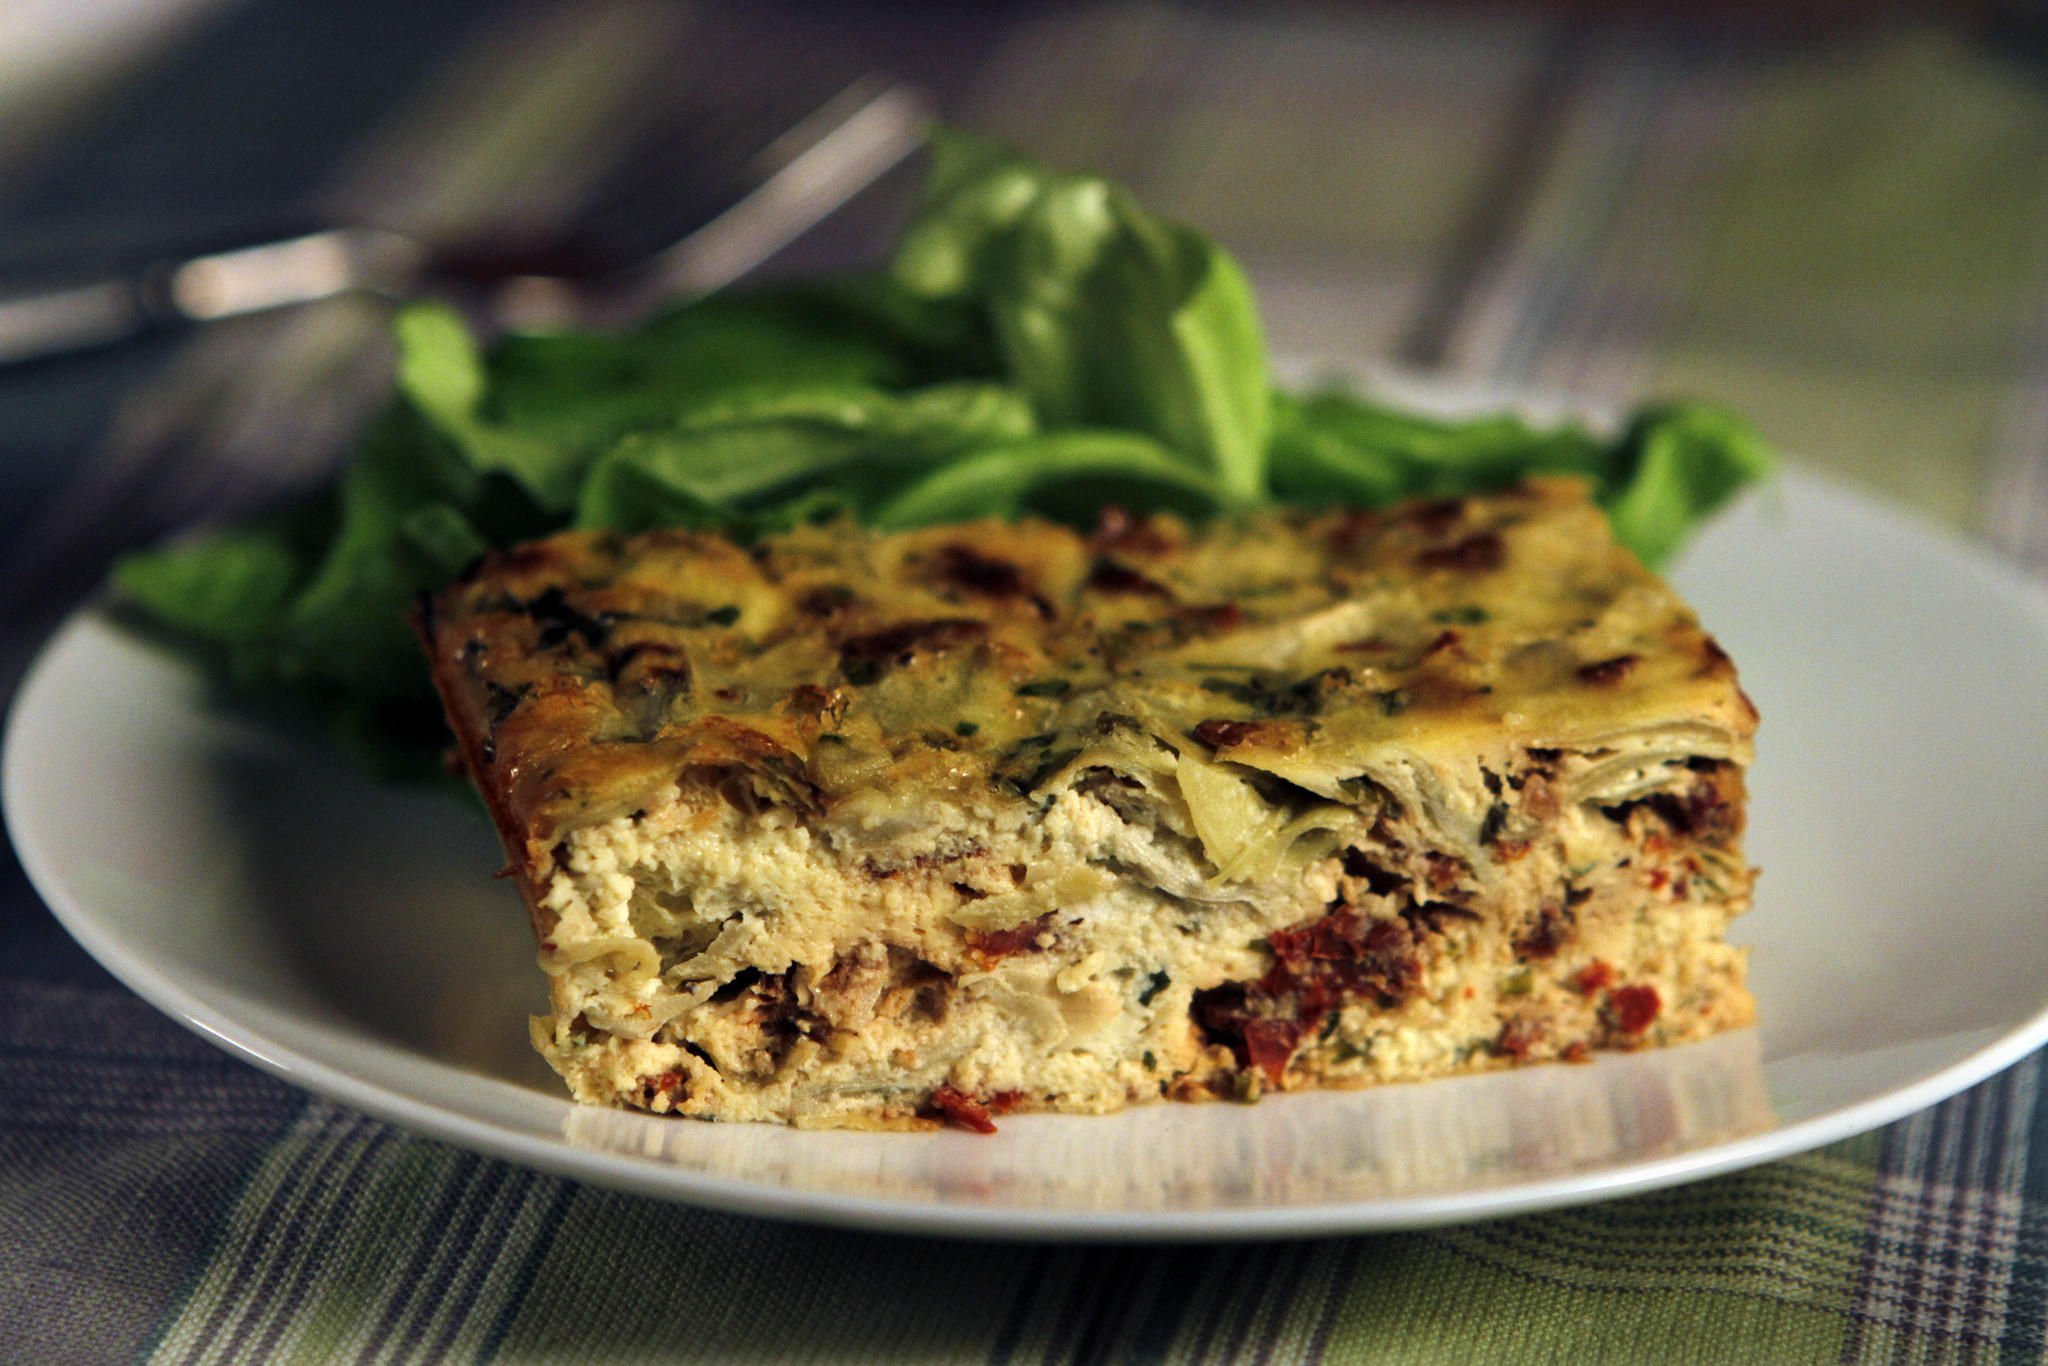 Artichoke and sun-dried tomato frittata